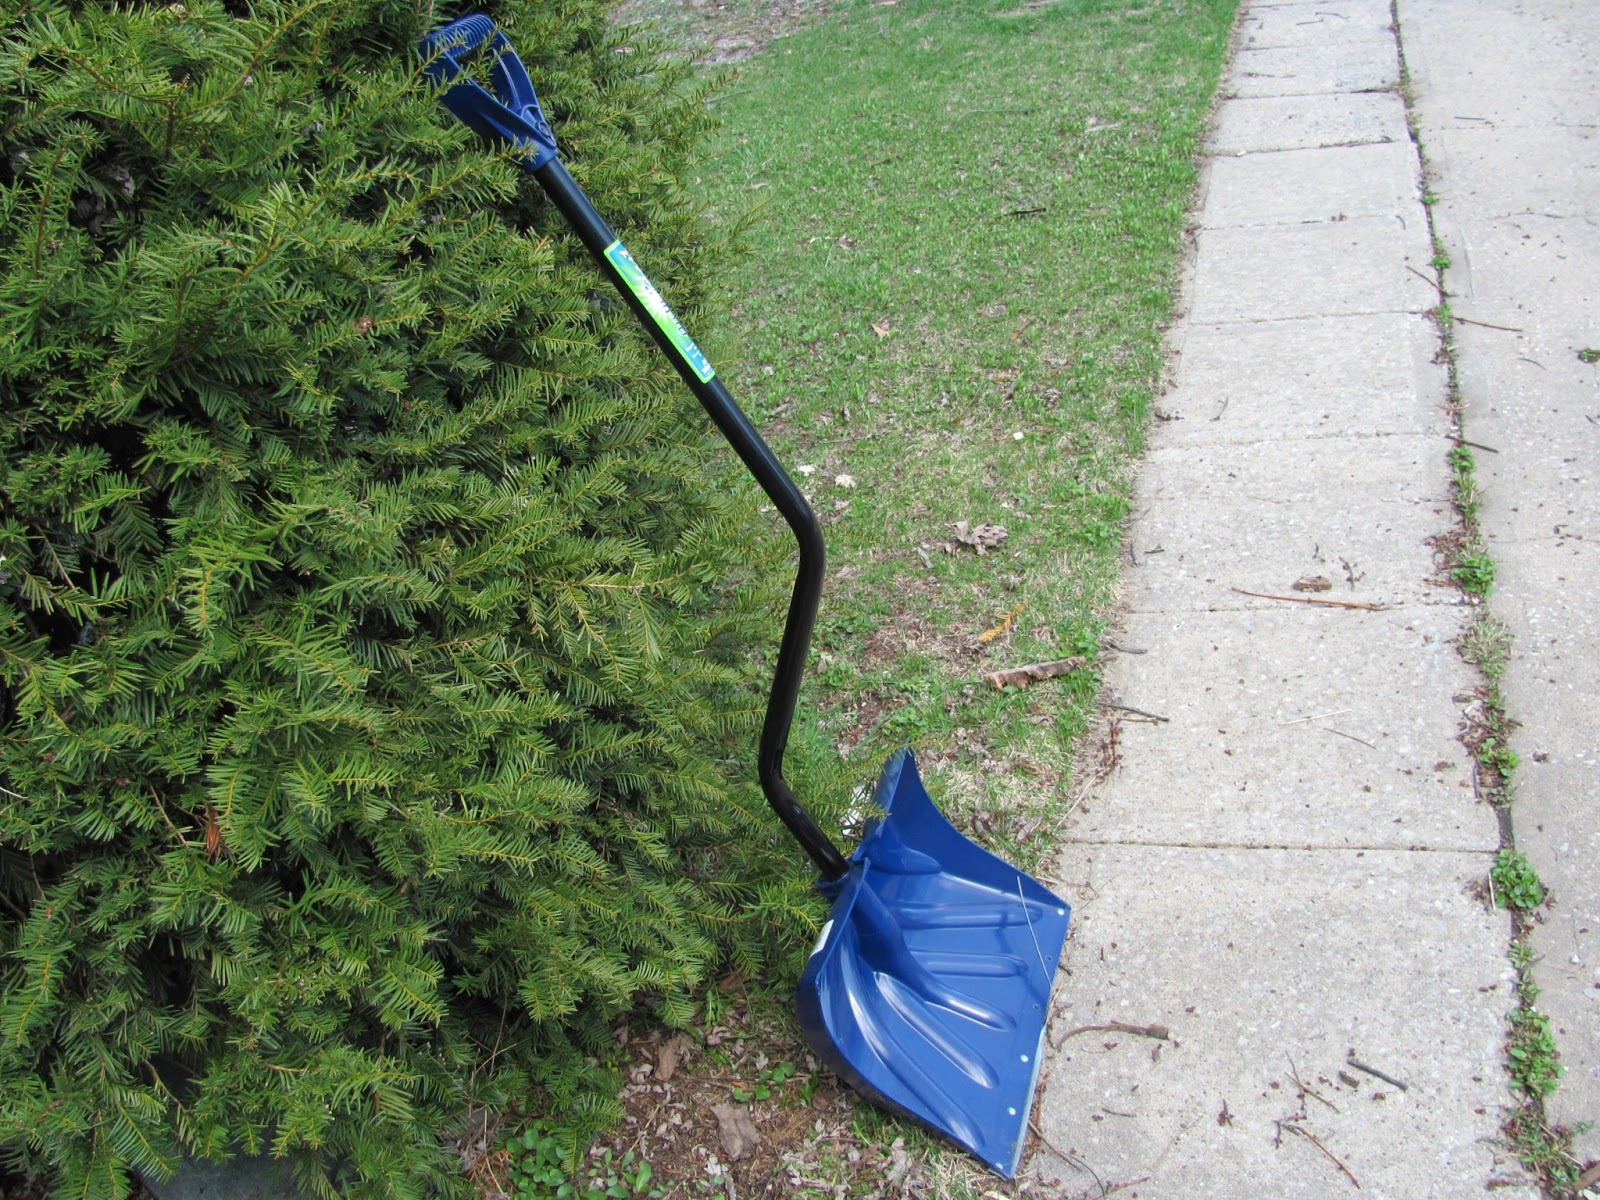 Blue snow shovel on display before being sold on Craigslist